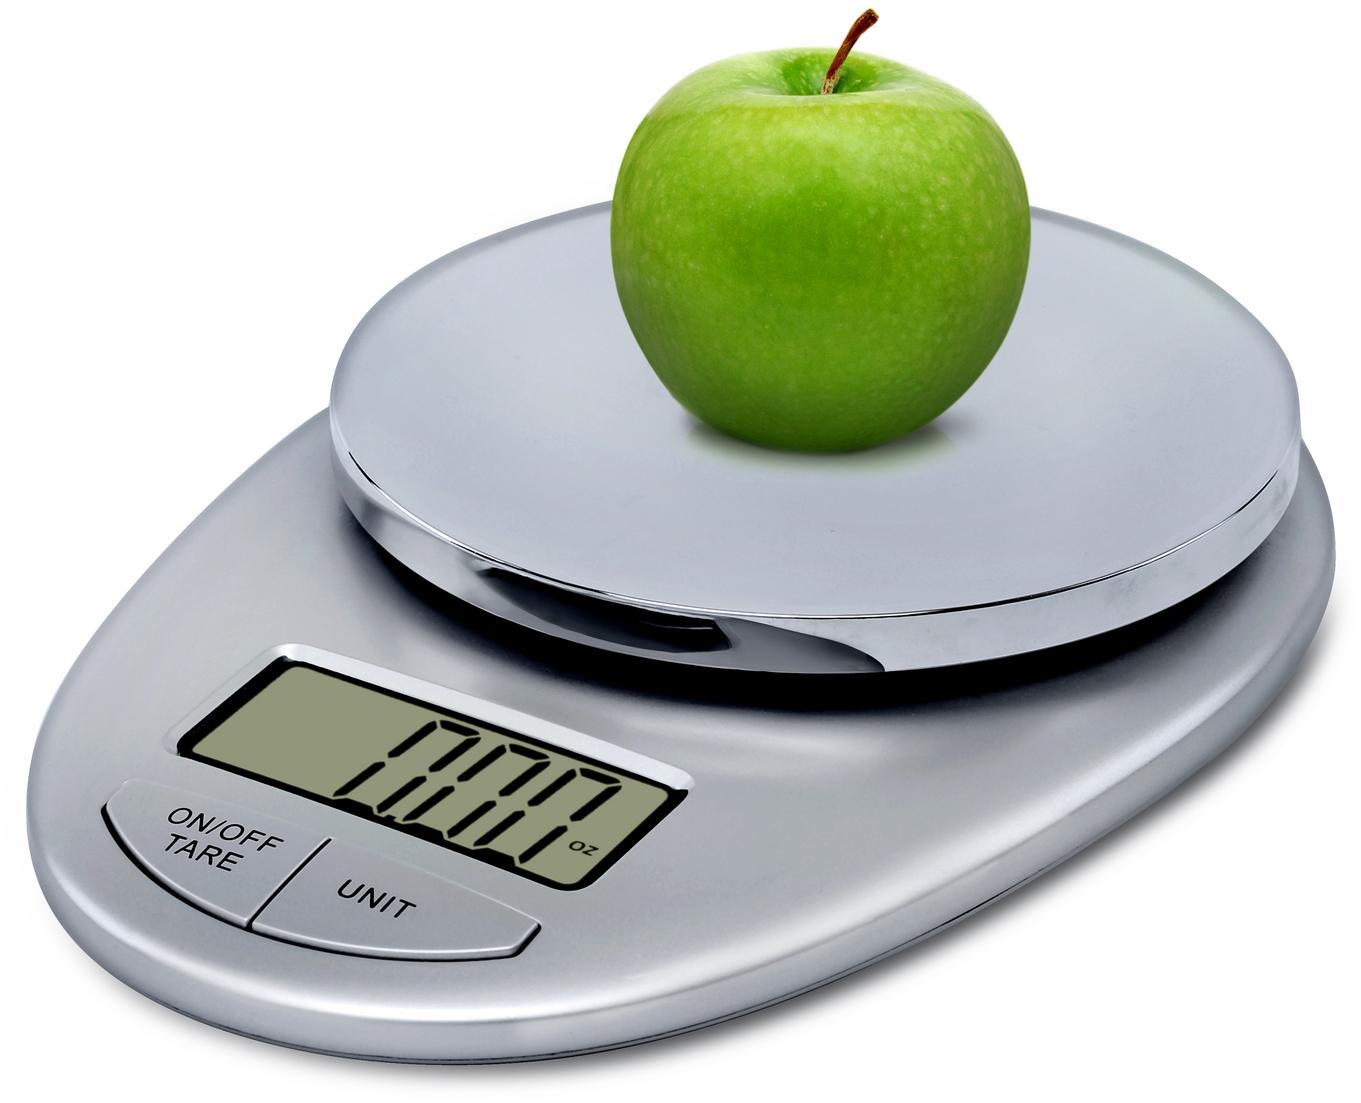 kitchen scale - Digital Kitchen Scale